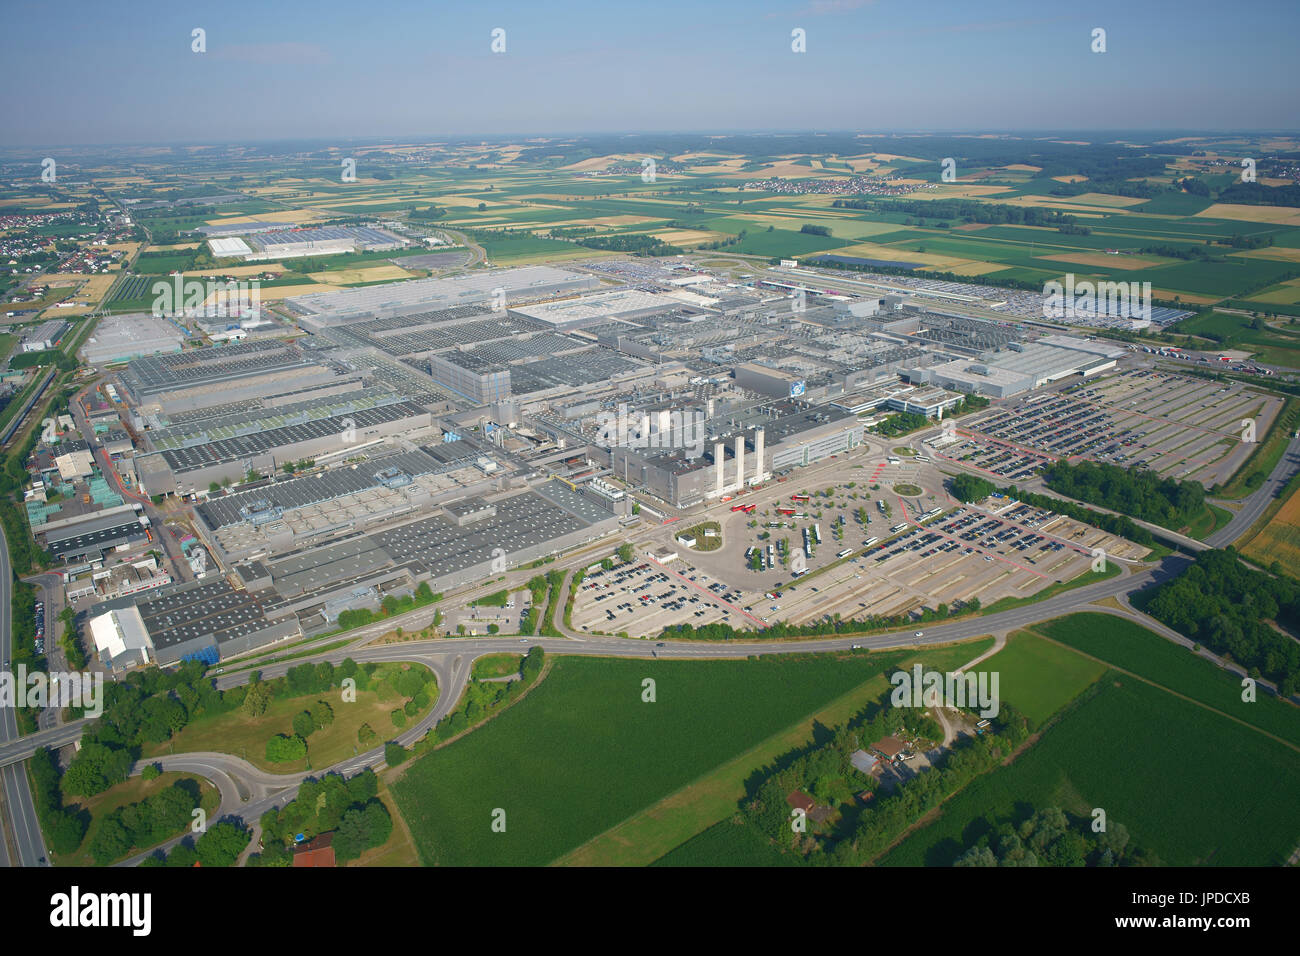 MEGA FACTORY WITH A YEARLY PRODUCTION OF 340,000 CARS (in 2015) (aerial view). BMW Group Plant Dingolfing, Bavaria, - Stock Image